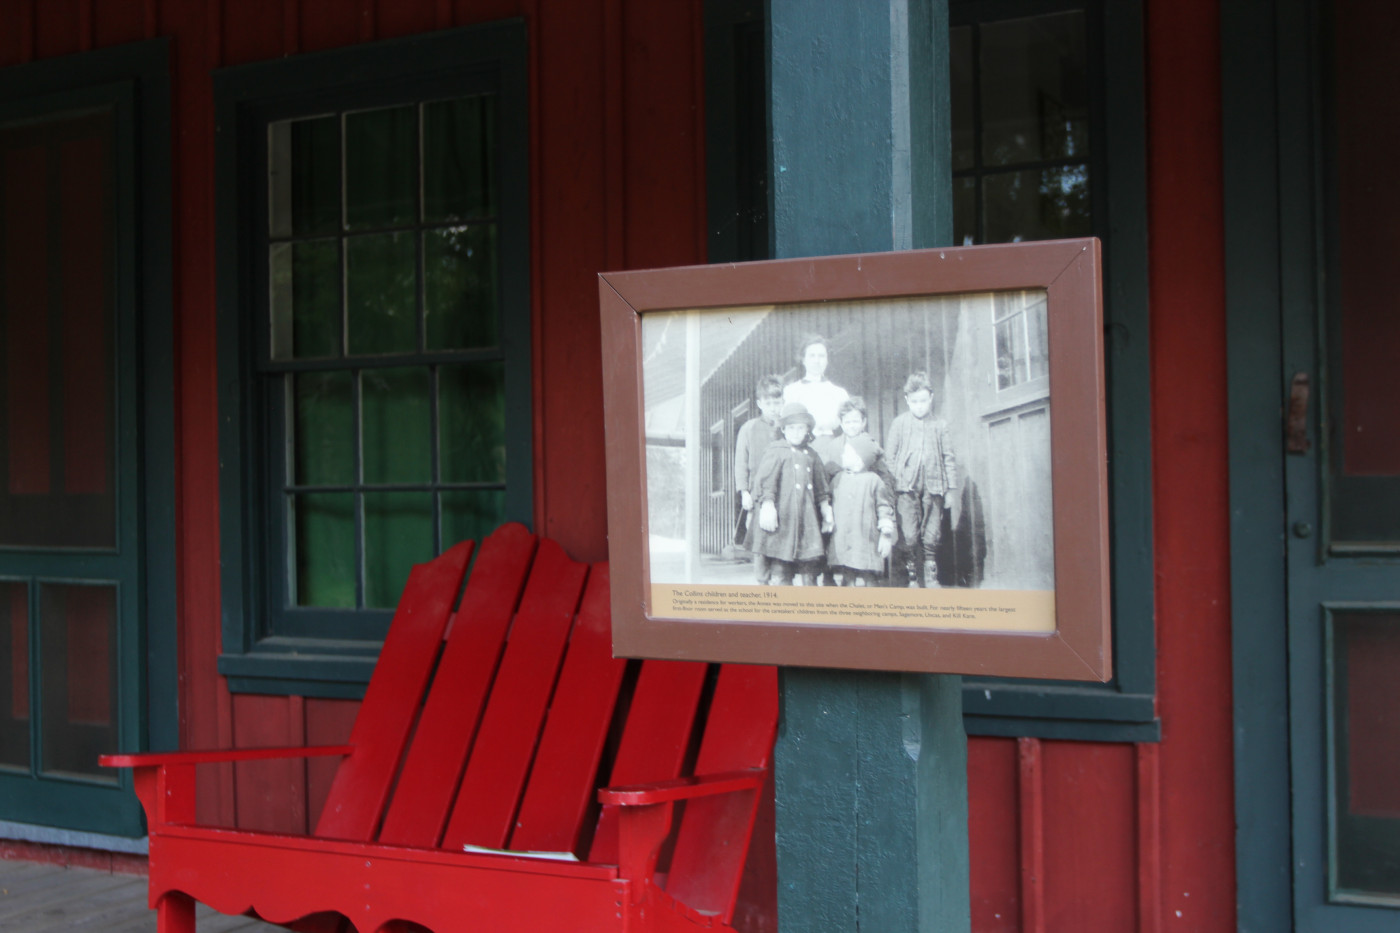 The porch of Sagamore's schoolhouse, with photo of children and their teacher at the school.